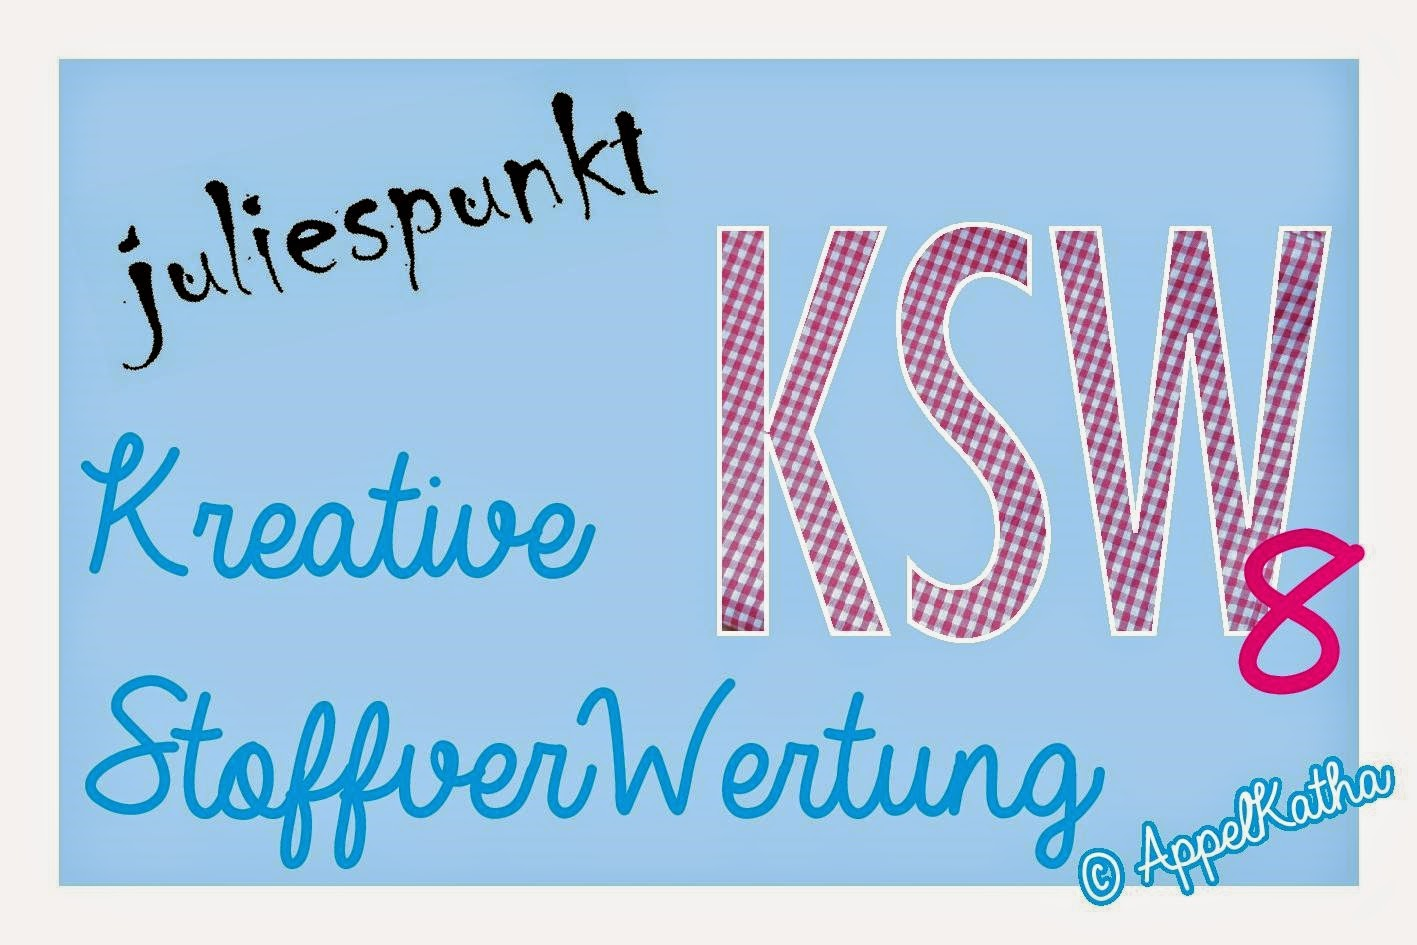 https://juliespunkt.wordpress.com/2015/02/11/kreative-stoffverwertung-runde-8/